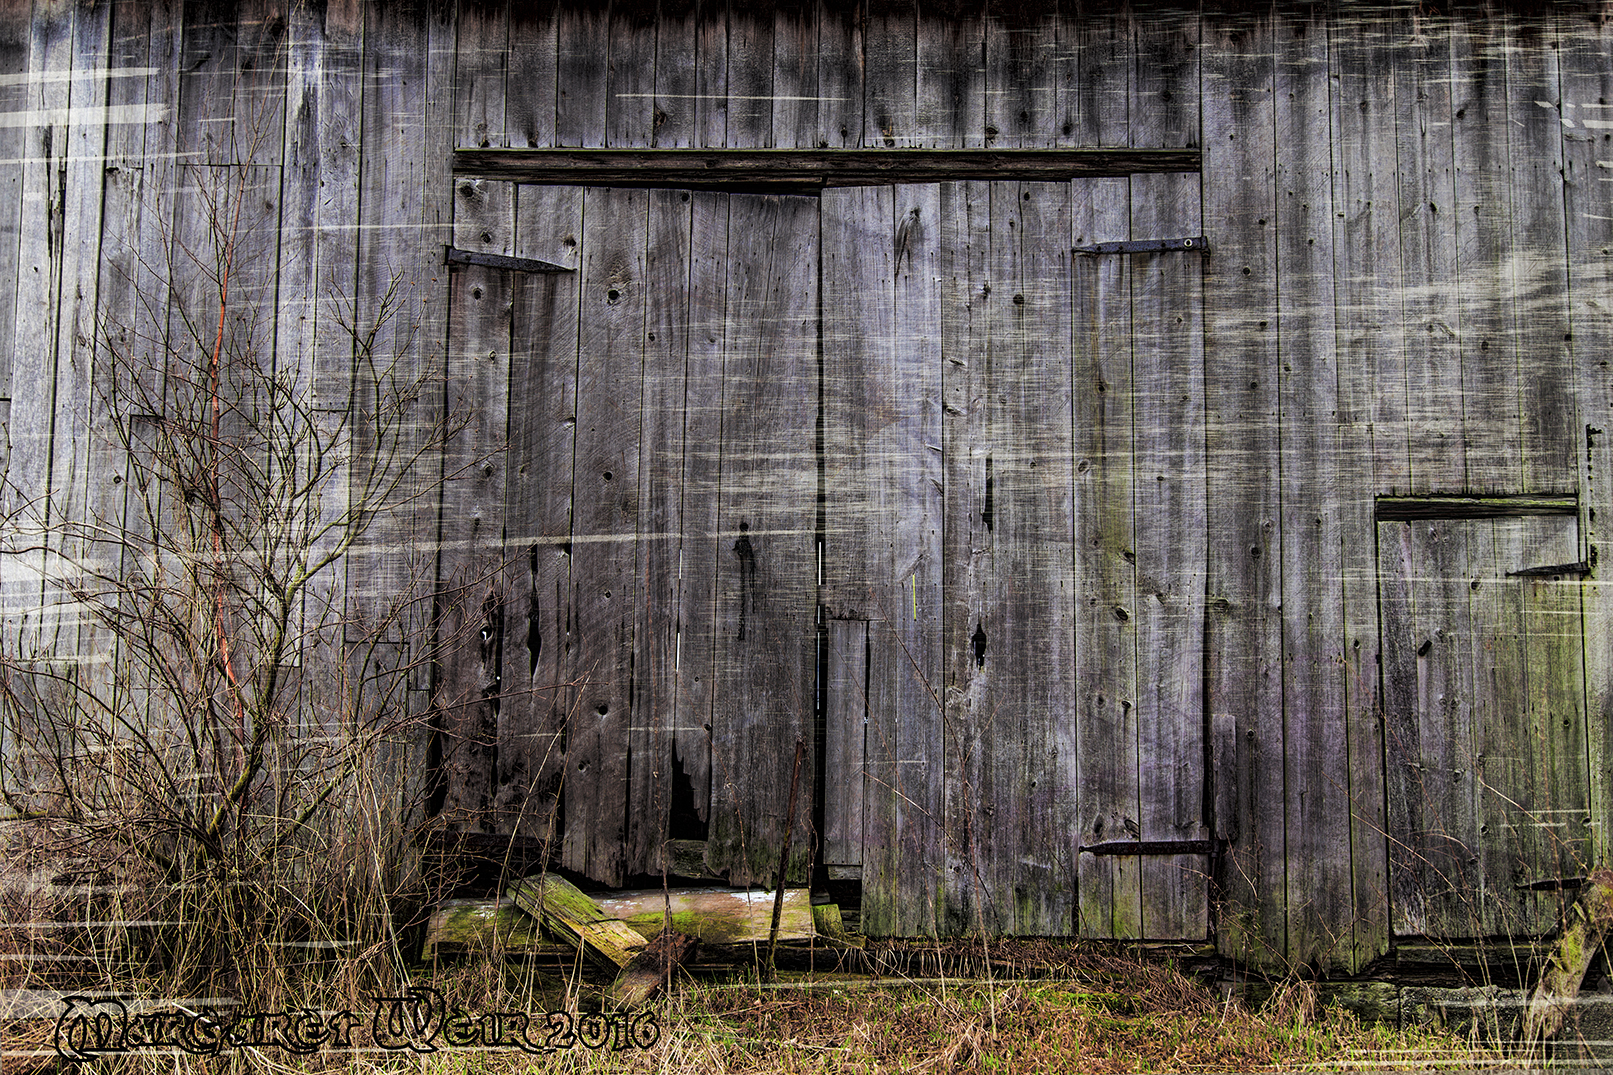 Old Doors for Giants and Little People